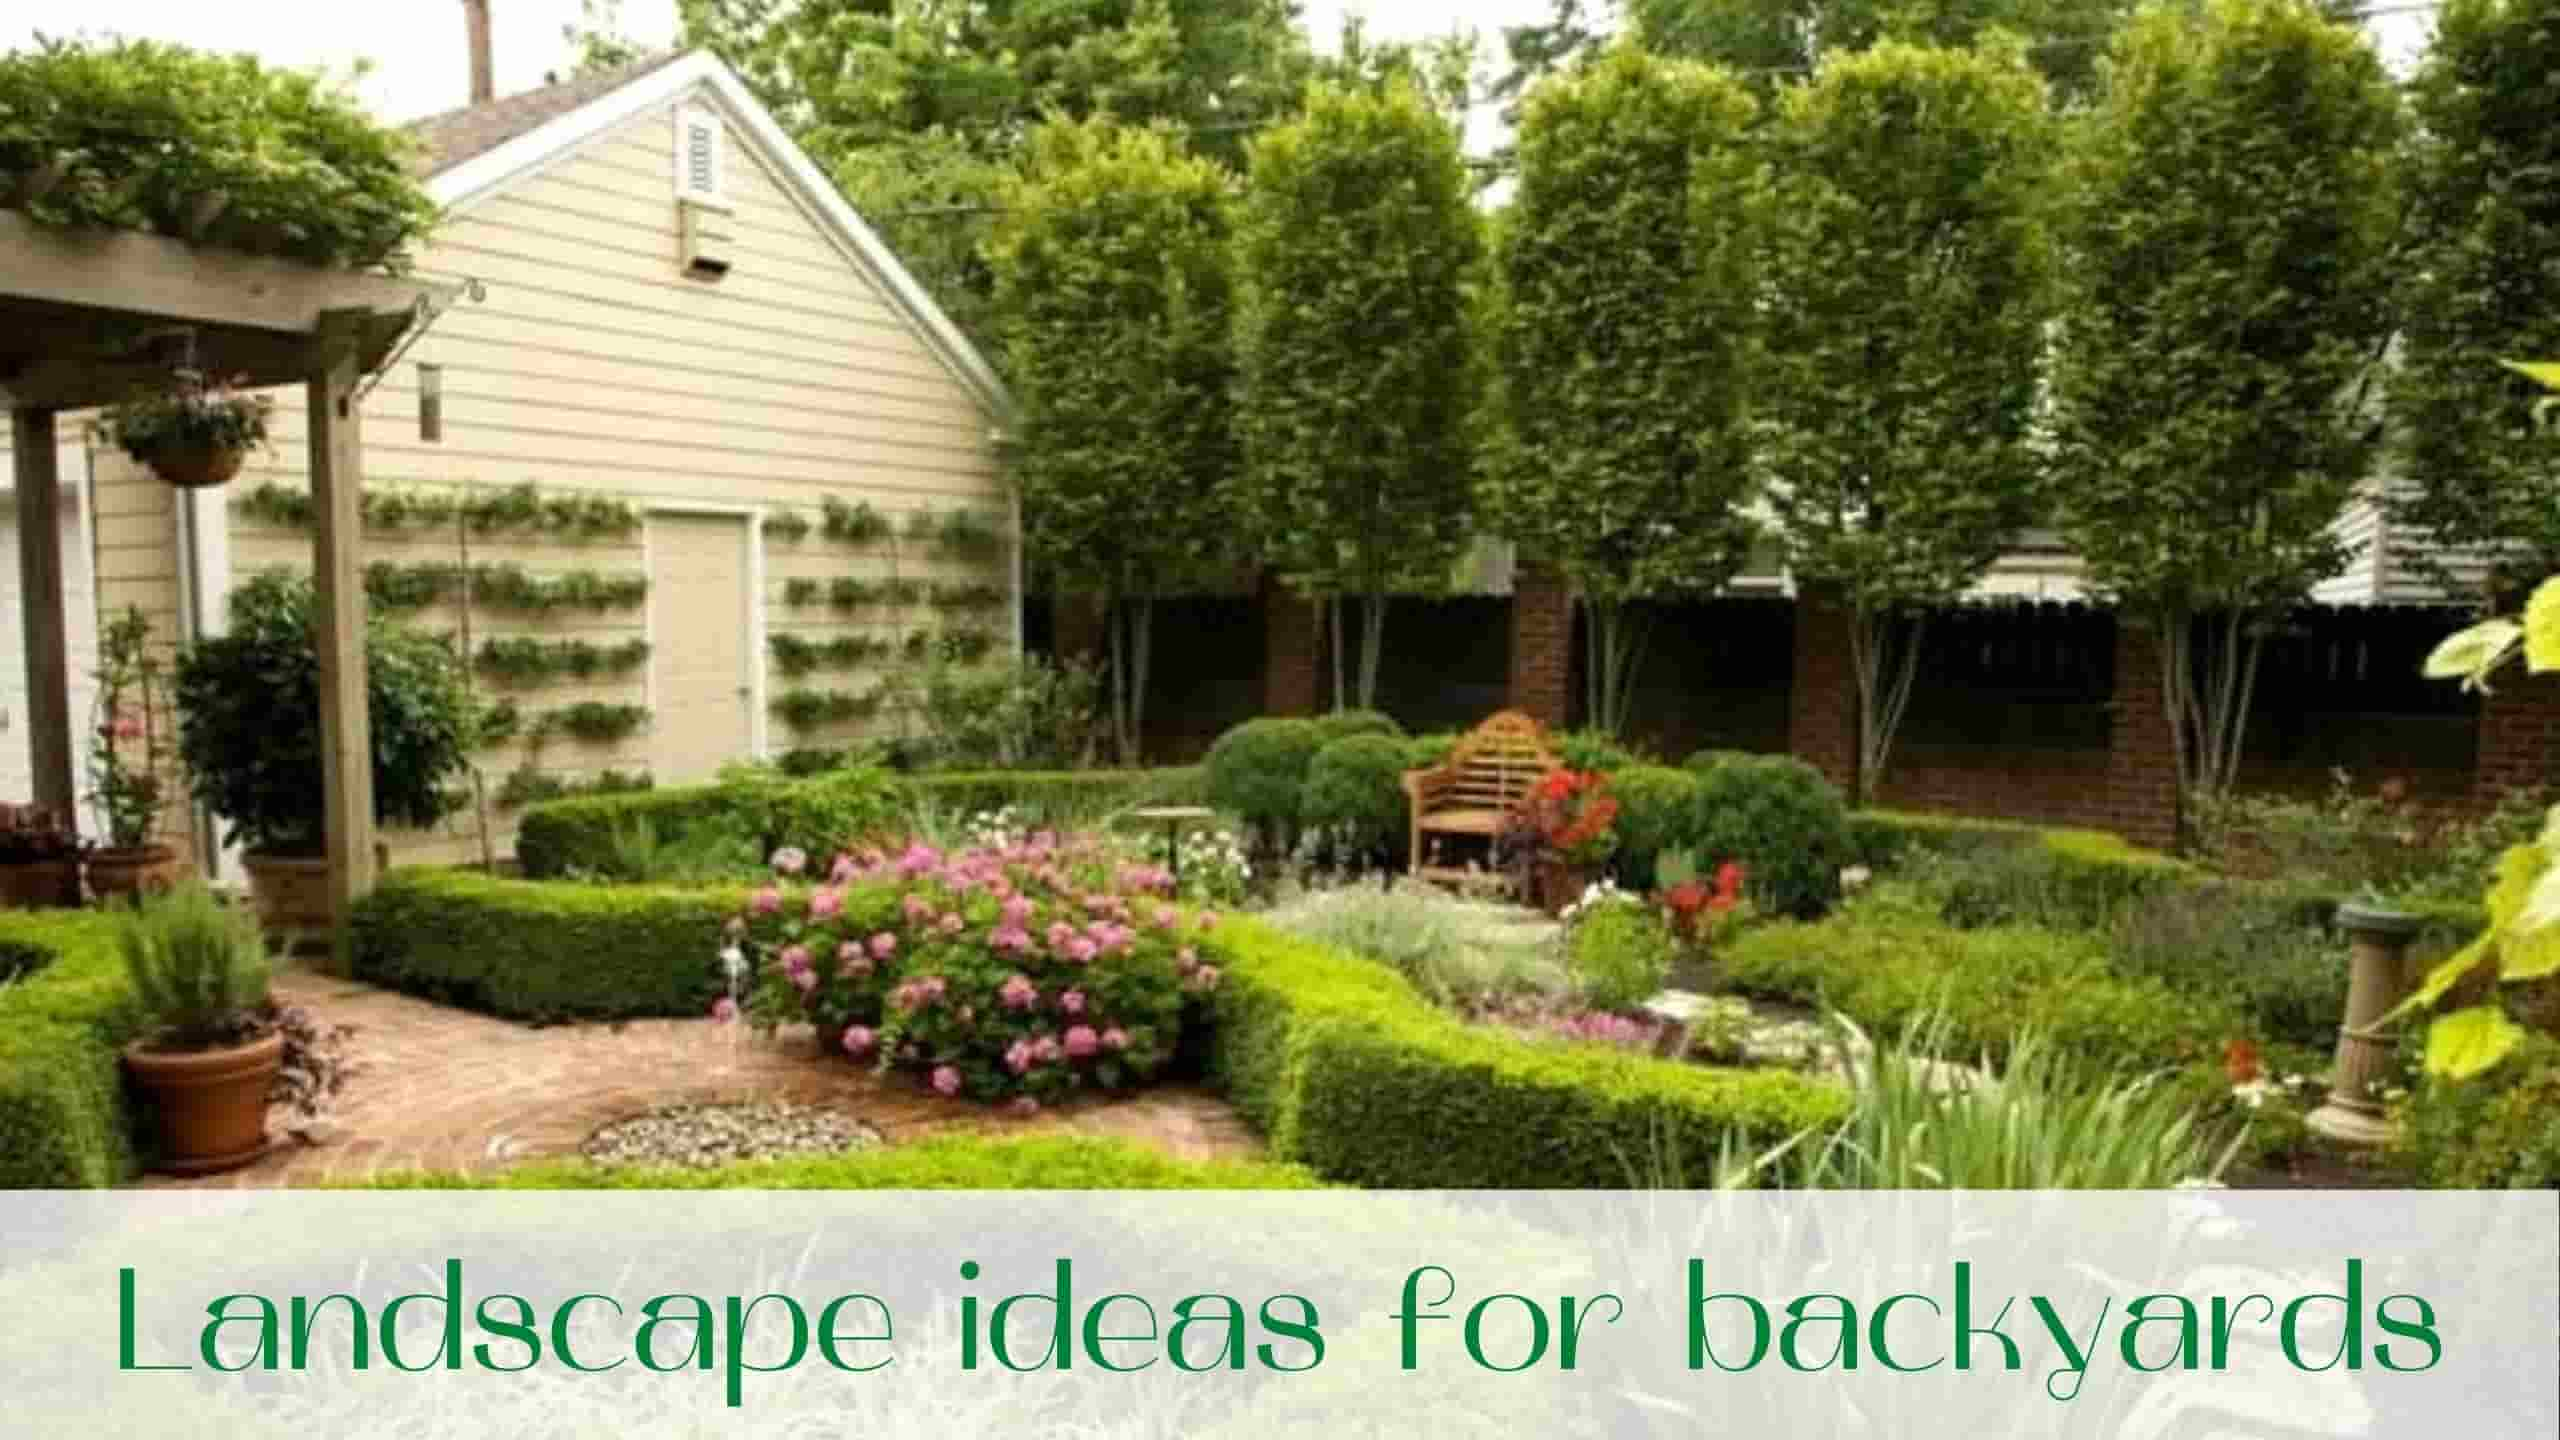 image-landscape-ideas-for-backyards